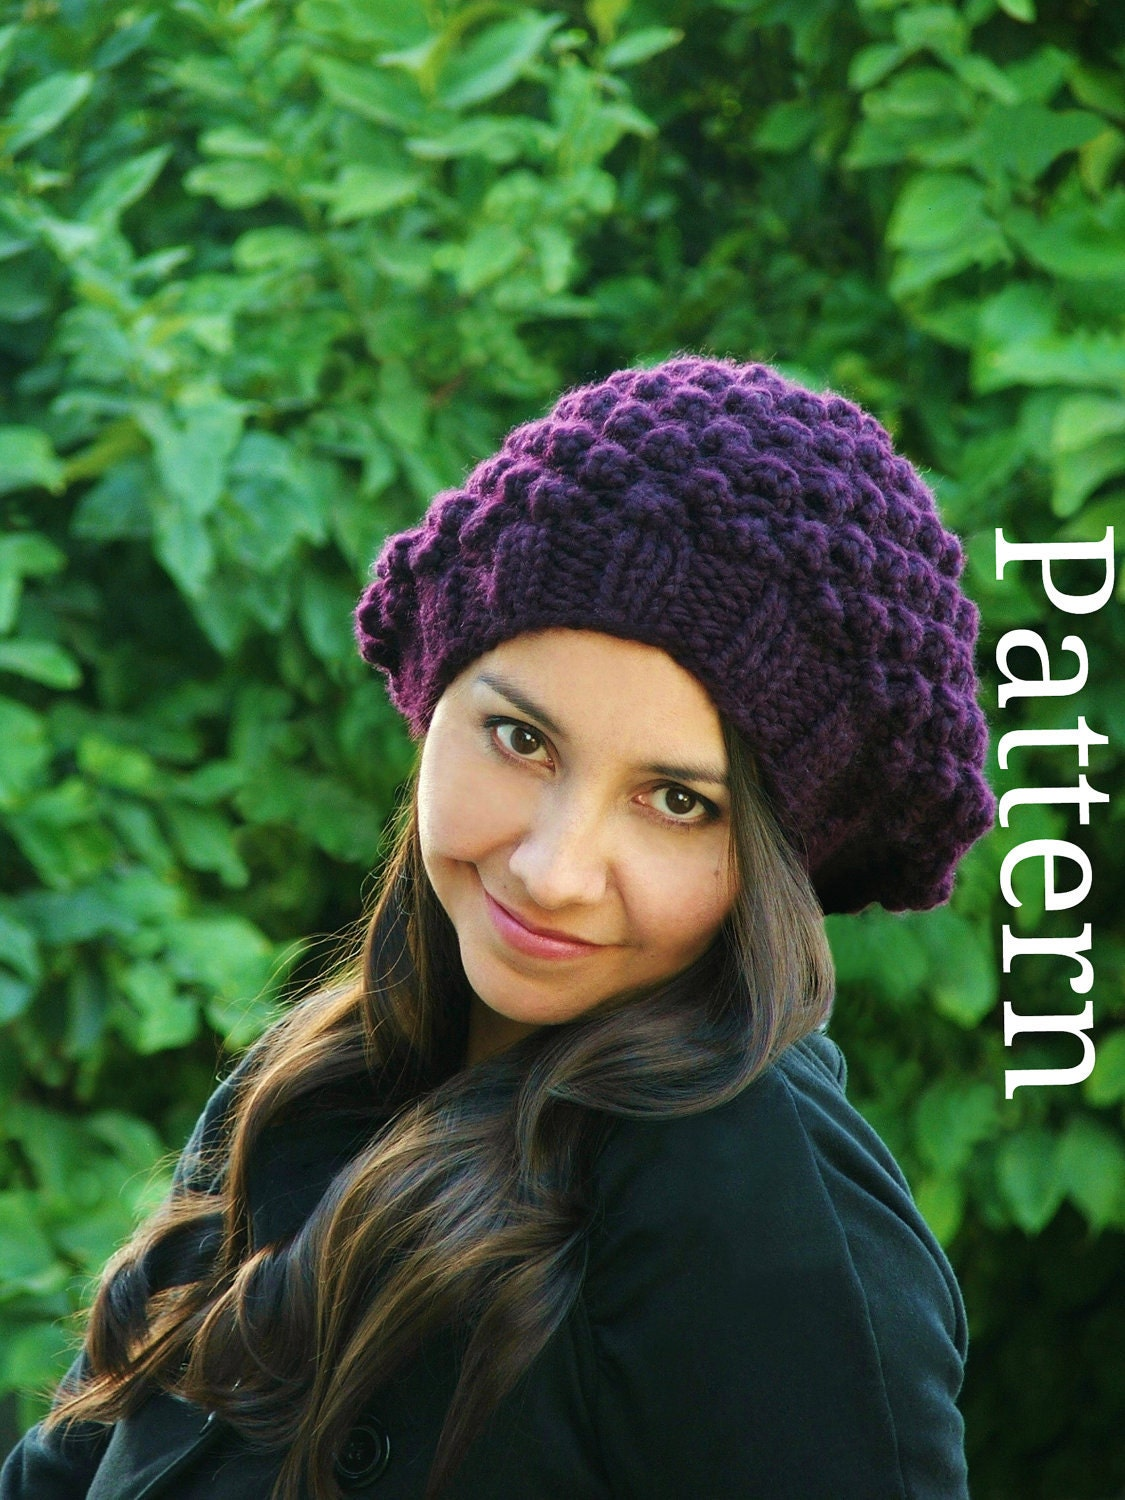 Double Knitting Bobble Hat Pattern Free : KNITTING PATTERNS FOR BOBBLE HATS 1000 Free Patterns